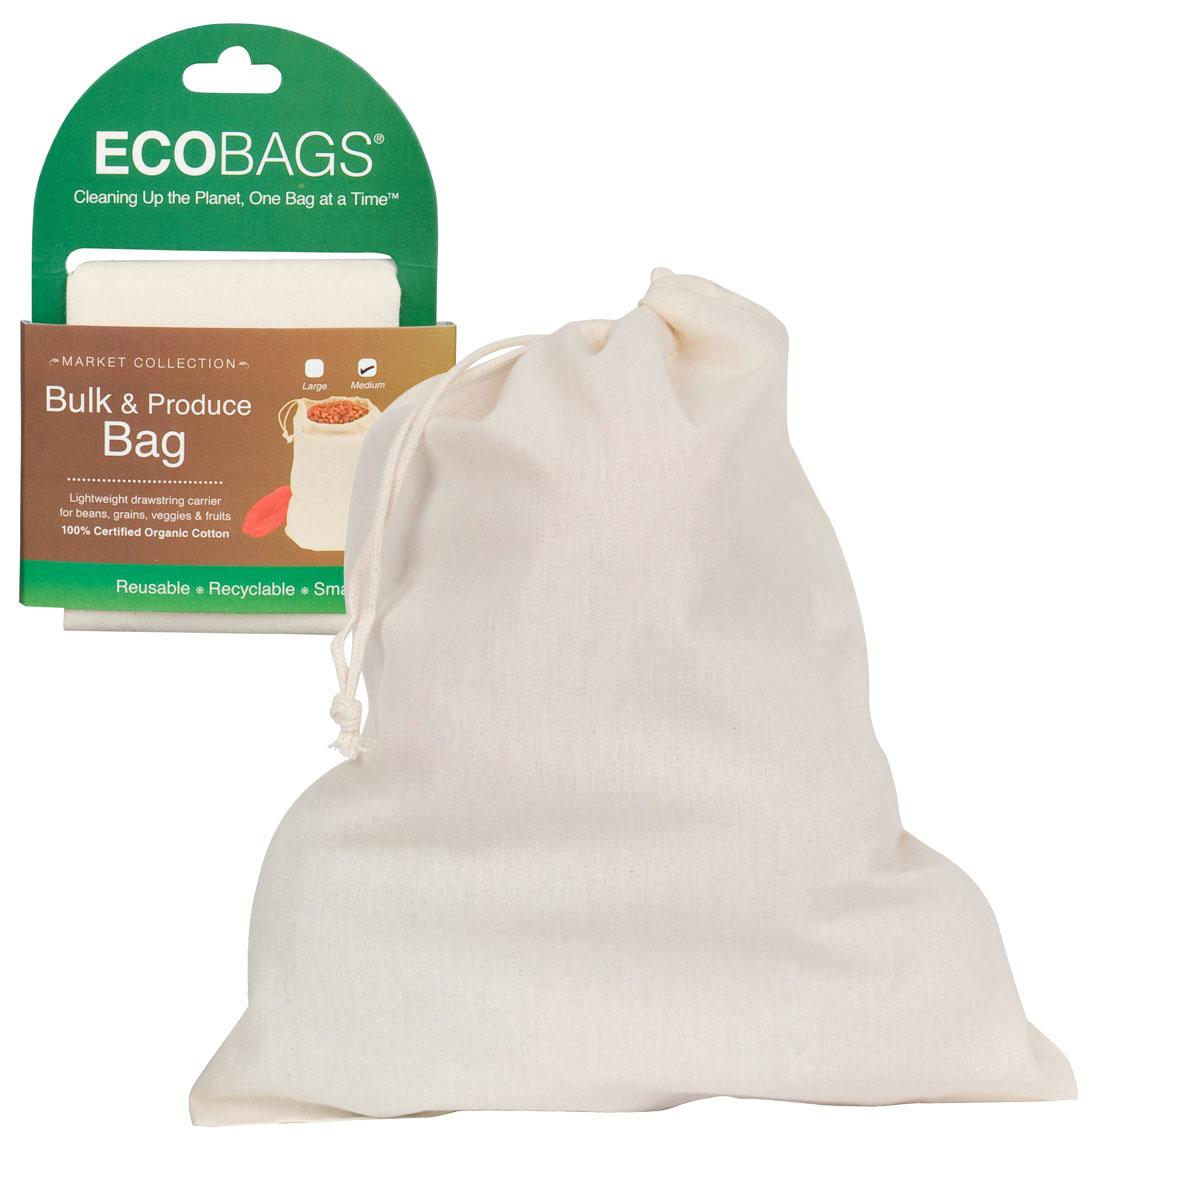 ECOBAGS Reusable Cotton Grocery Bag